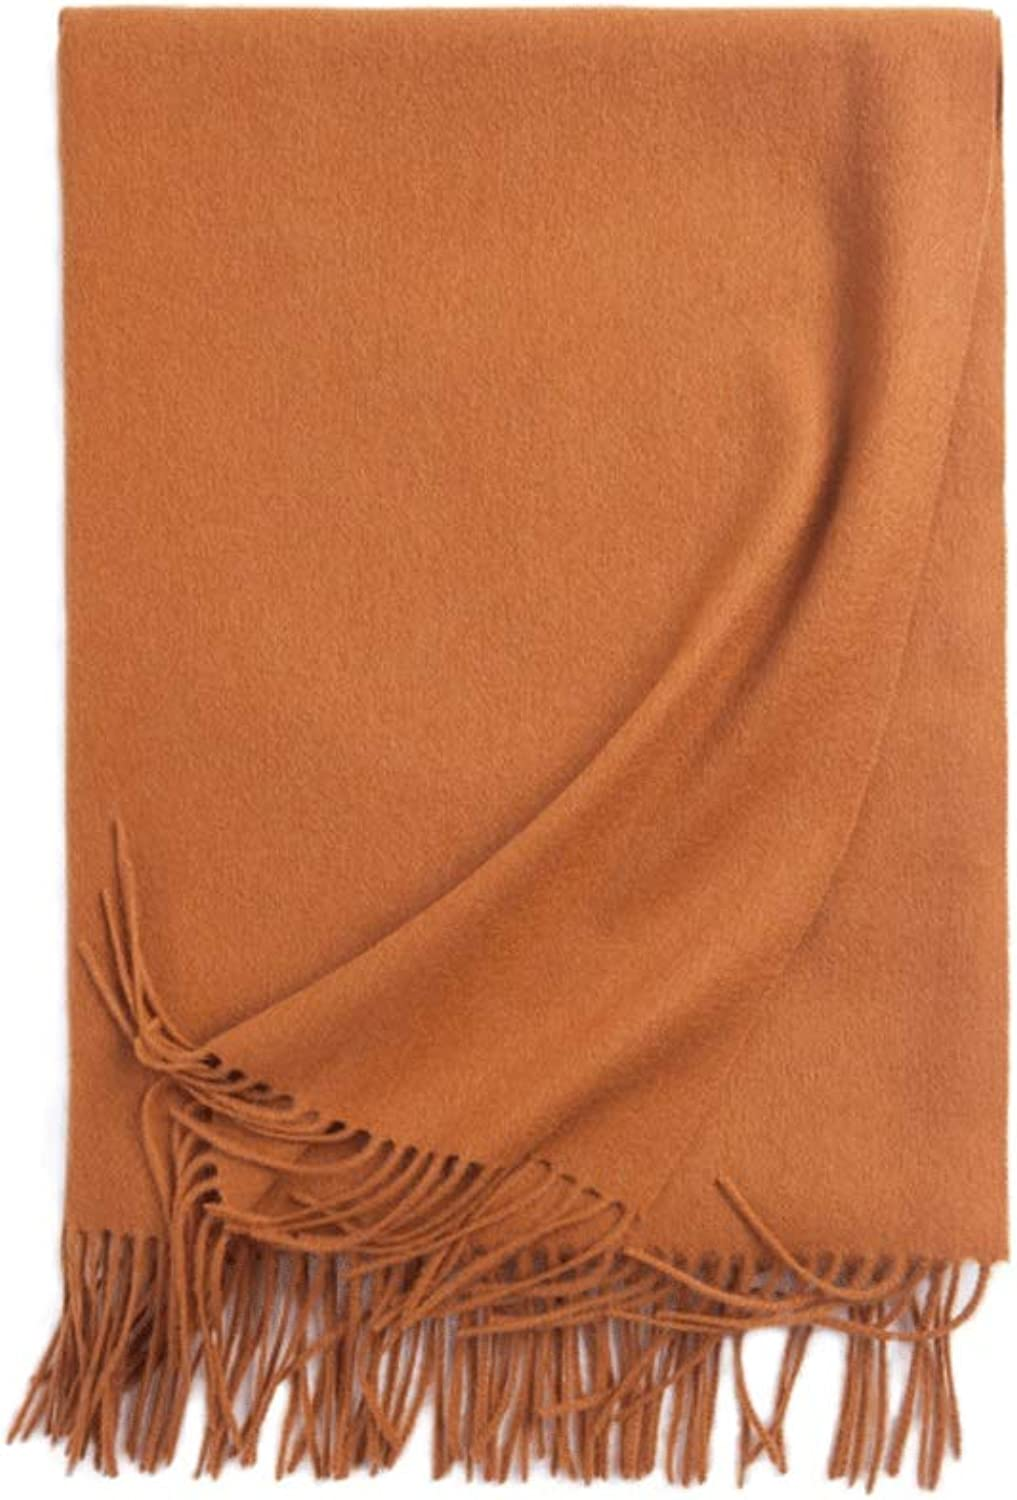 WXL Long Section Solid color Woman Scarf Winter Soft Elegant Tassels Long 200cm×70cm Shawl V (color   Caramel color)